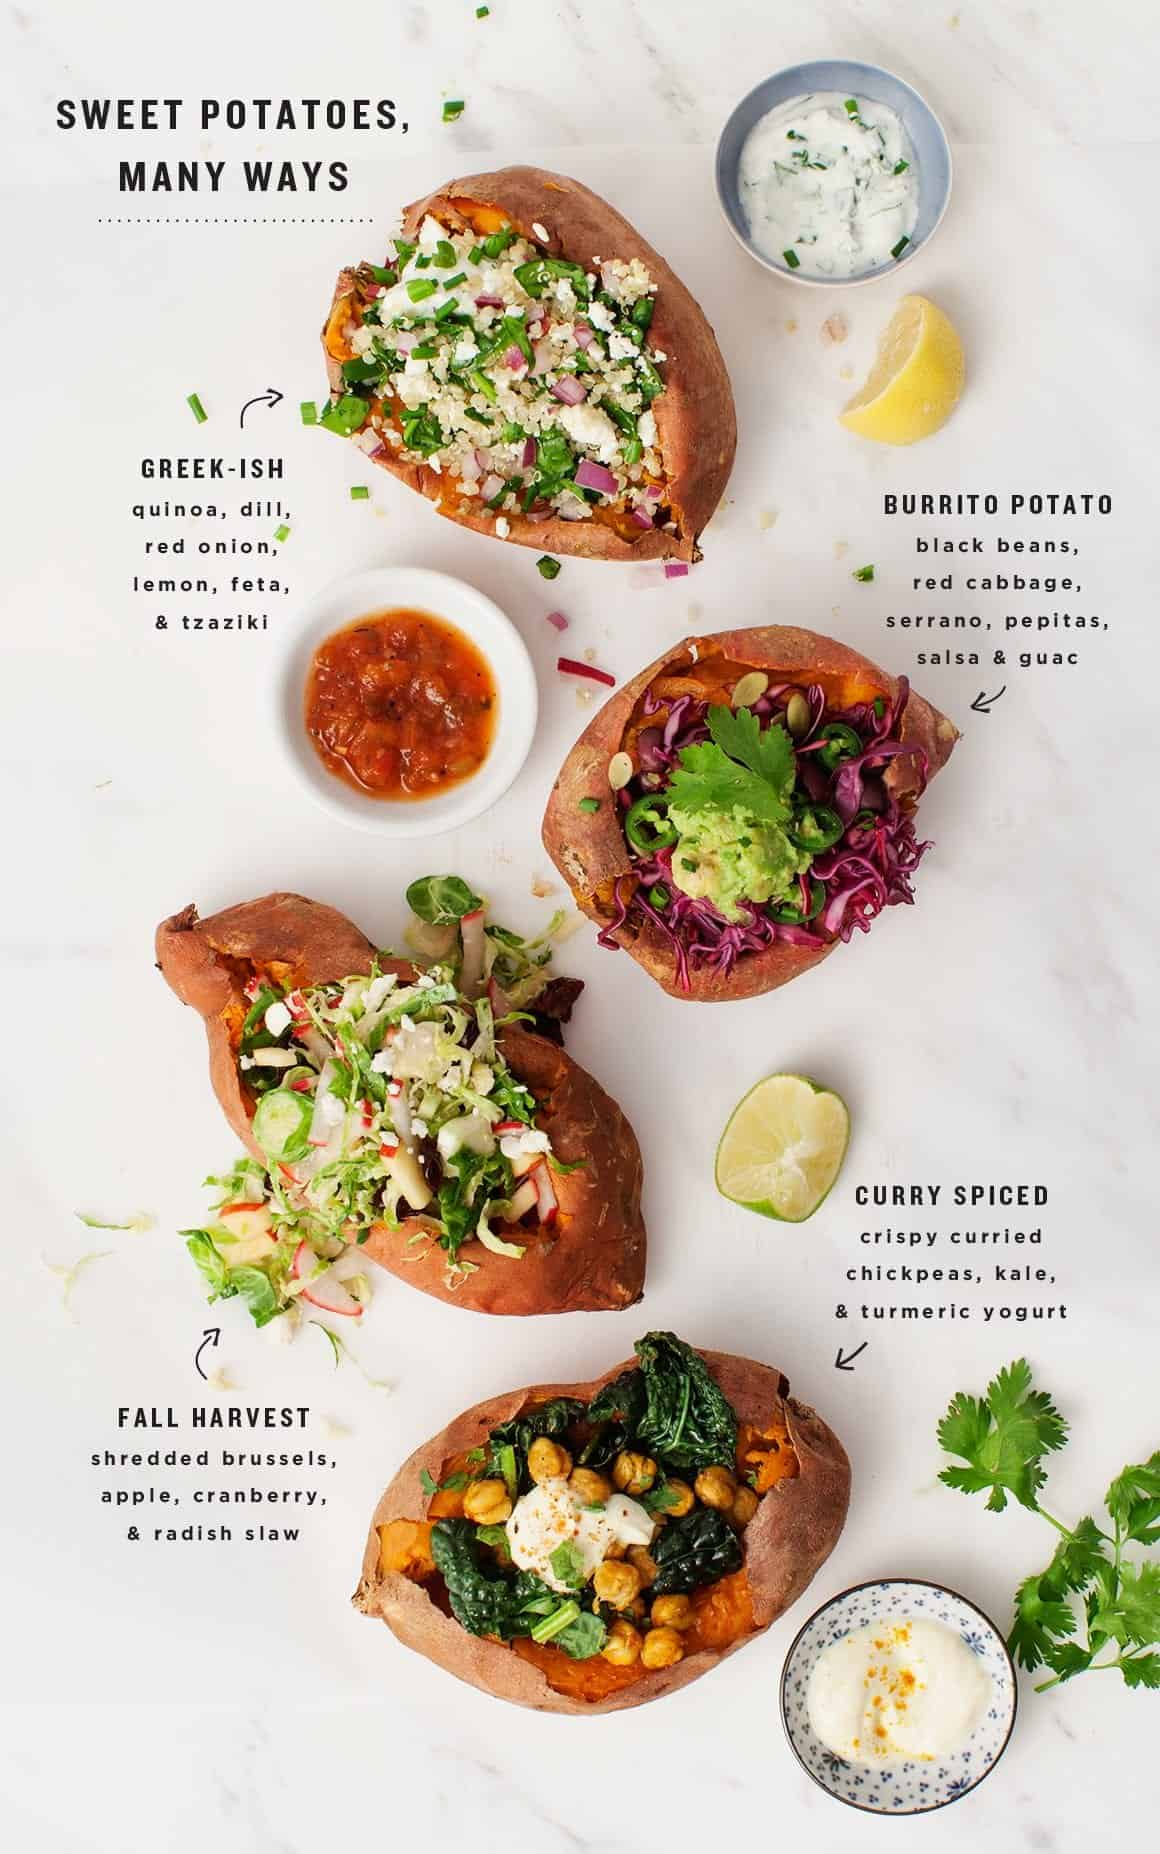 Stuffed Sweet Potatoes, Many Ways